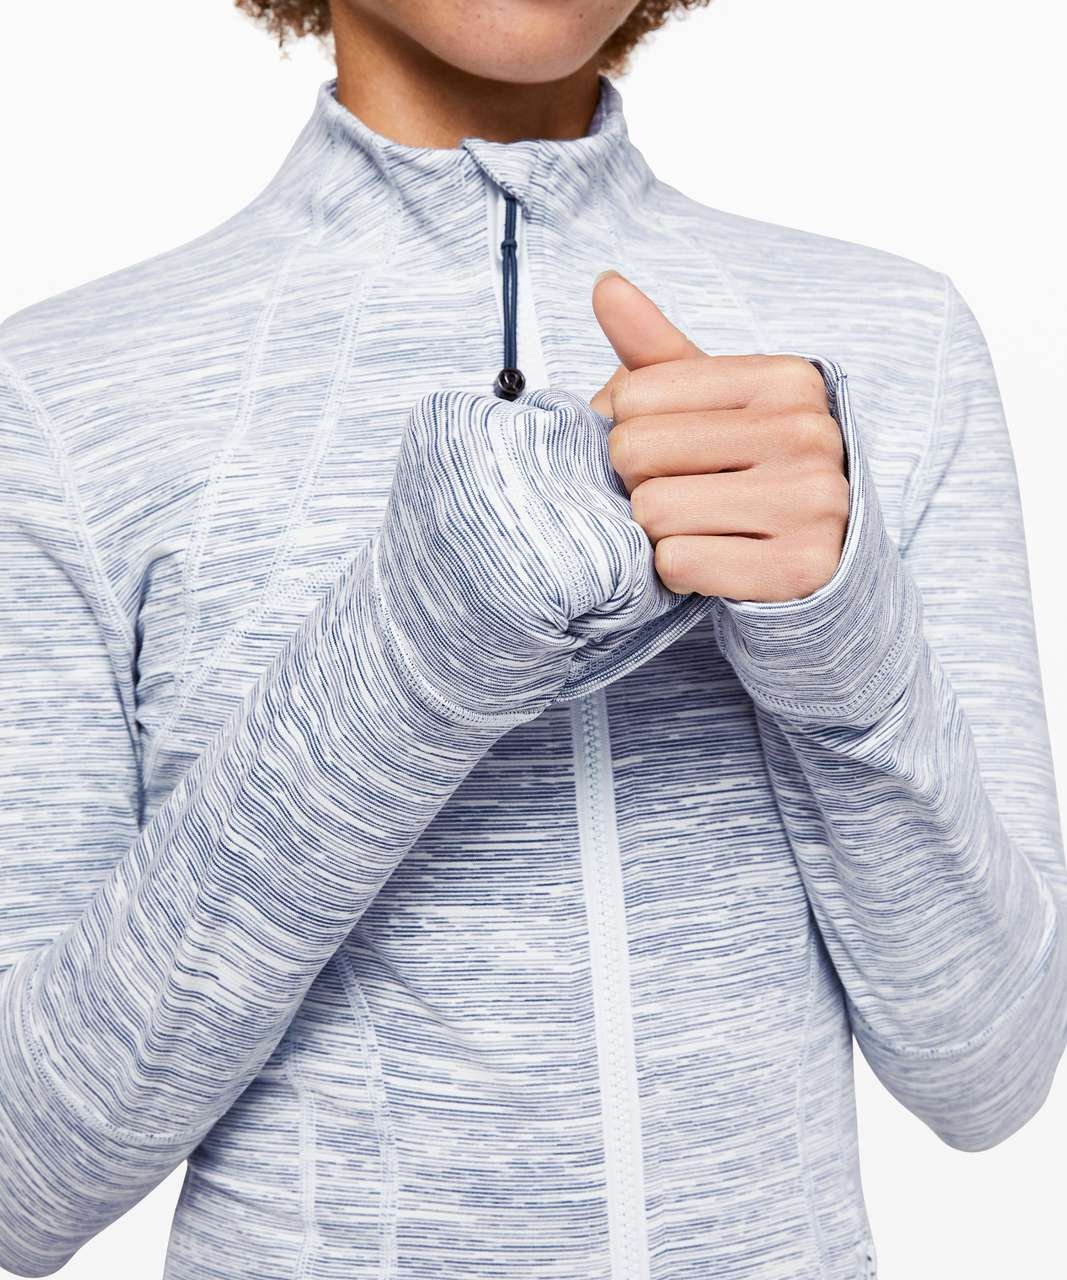 Lululemon Define Jacket - Wee Are From Space Sheer Blue Chambray